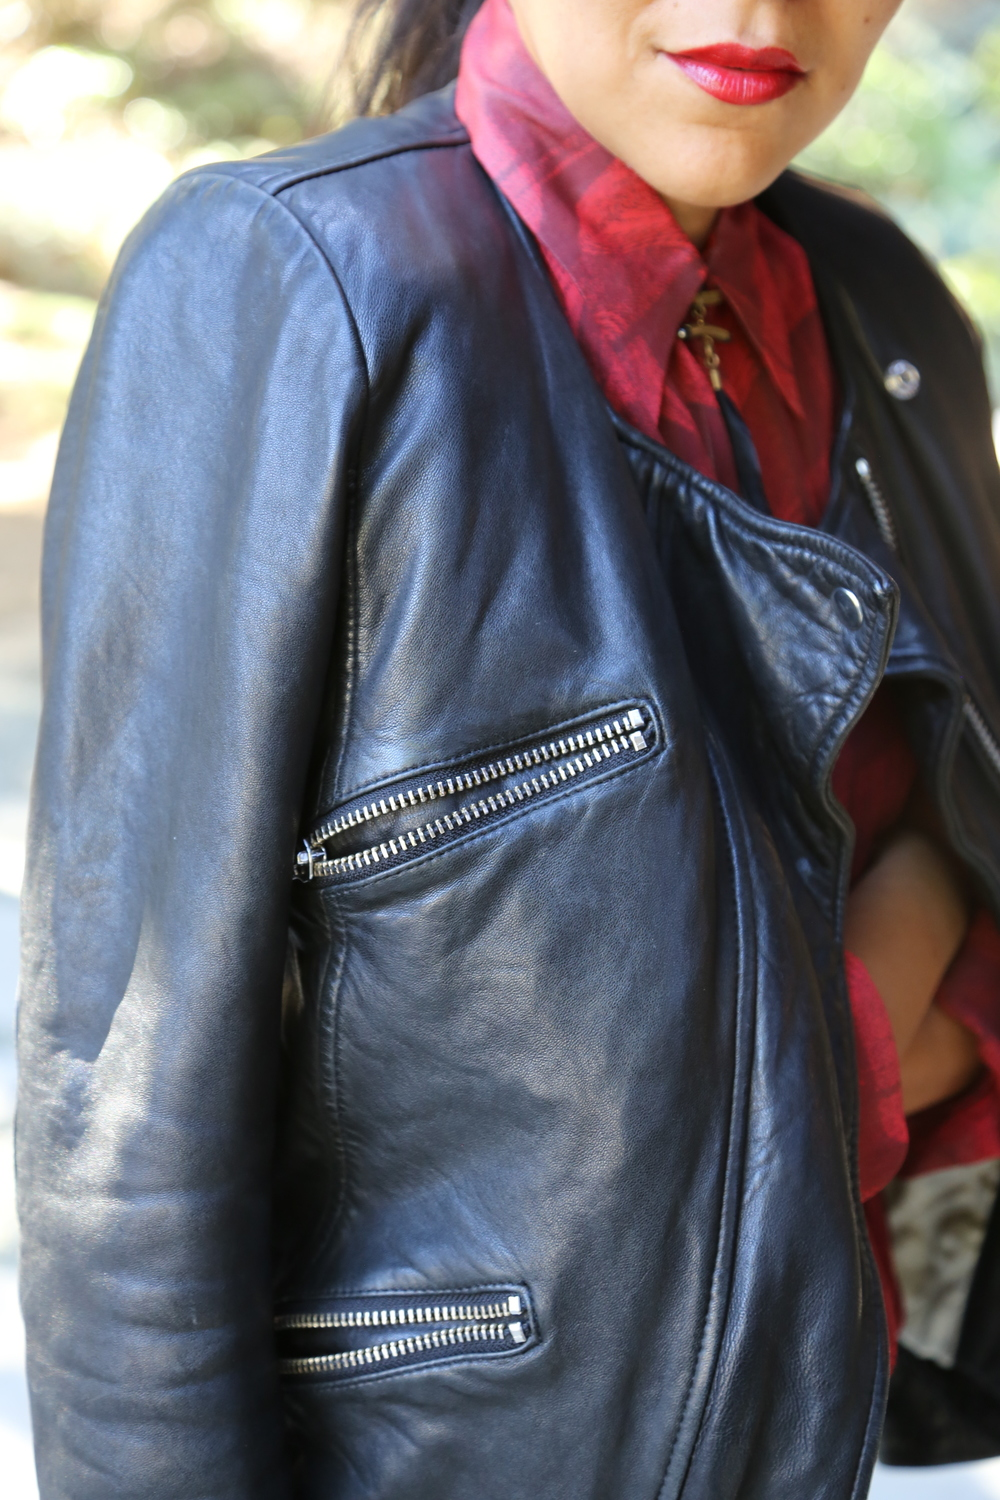 isabel-marant-black-leather-moto-jacket-los-angeles.jog